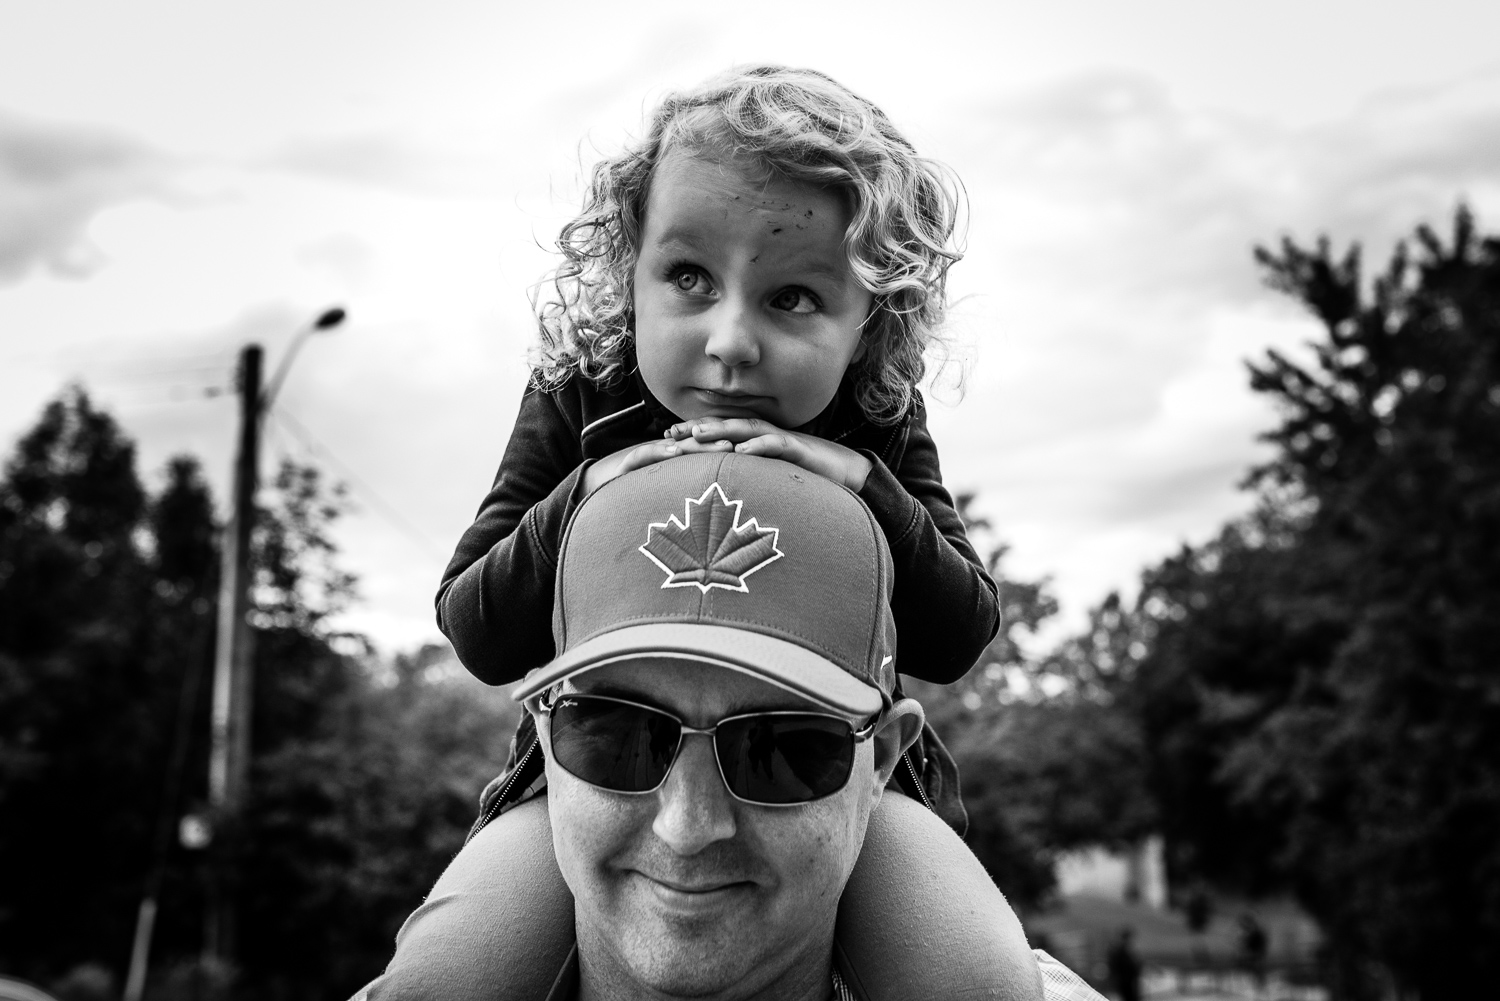 A black and white image of a toddler girl with curly hair sitting on her dad's shoulders resting her hands and head on his head and hat with a canadian maple leaf on it.